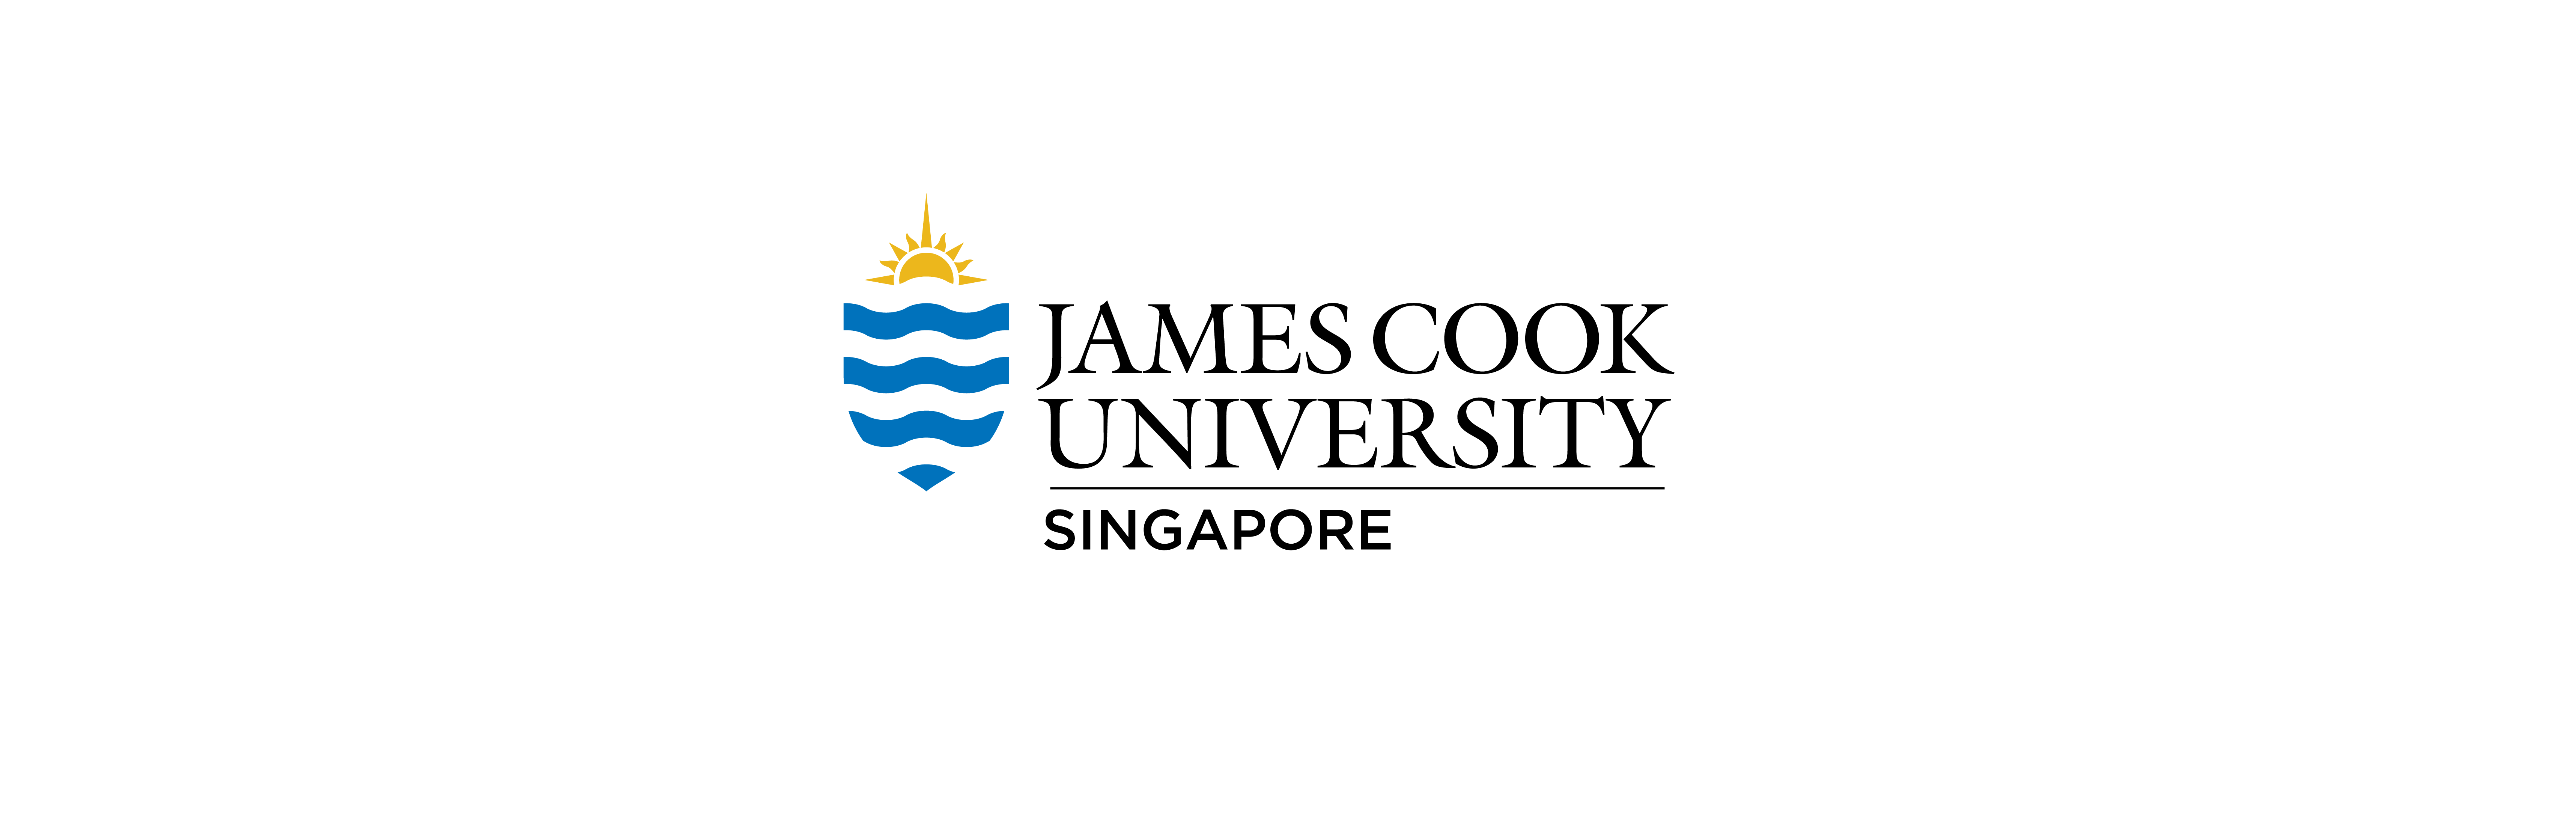 James Cook University Singapore is hiring an Associate Lecturer/Lecturer in Clinical Psychology!